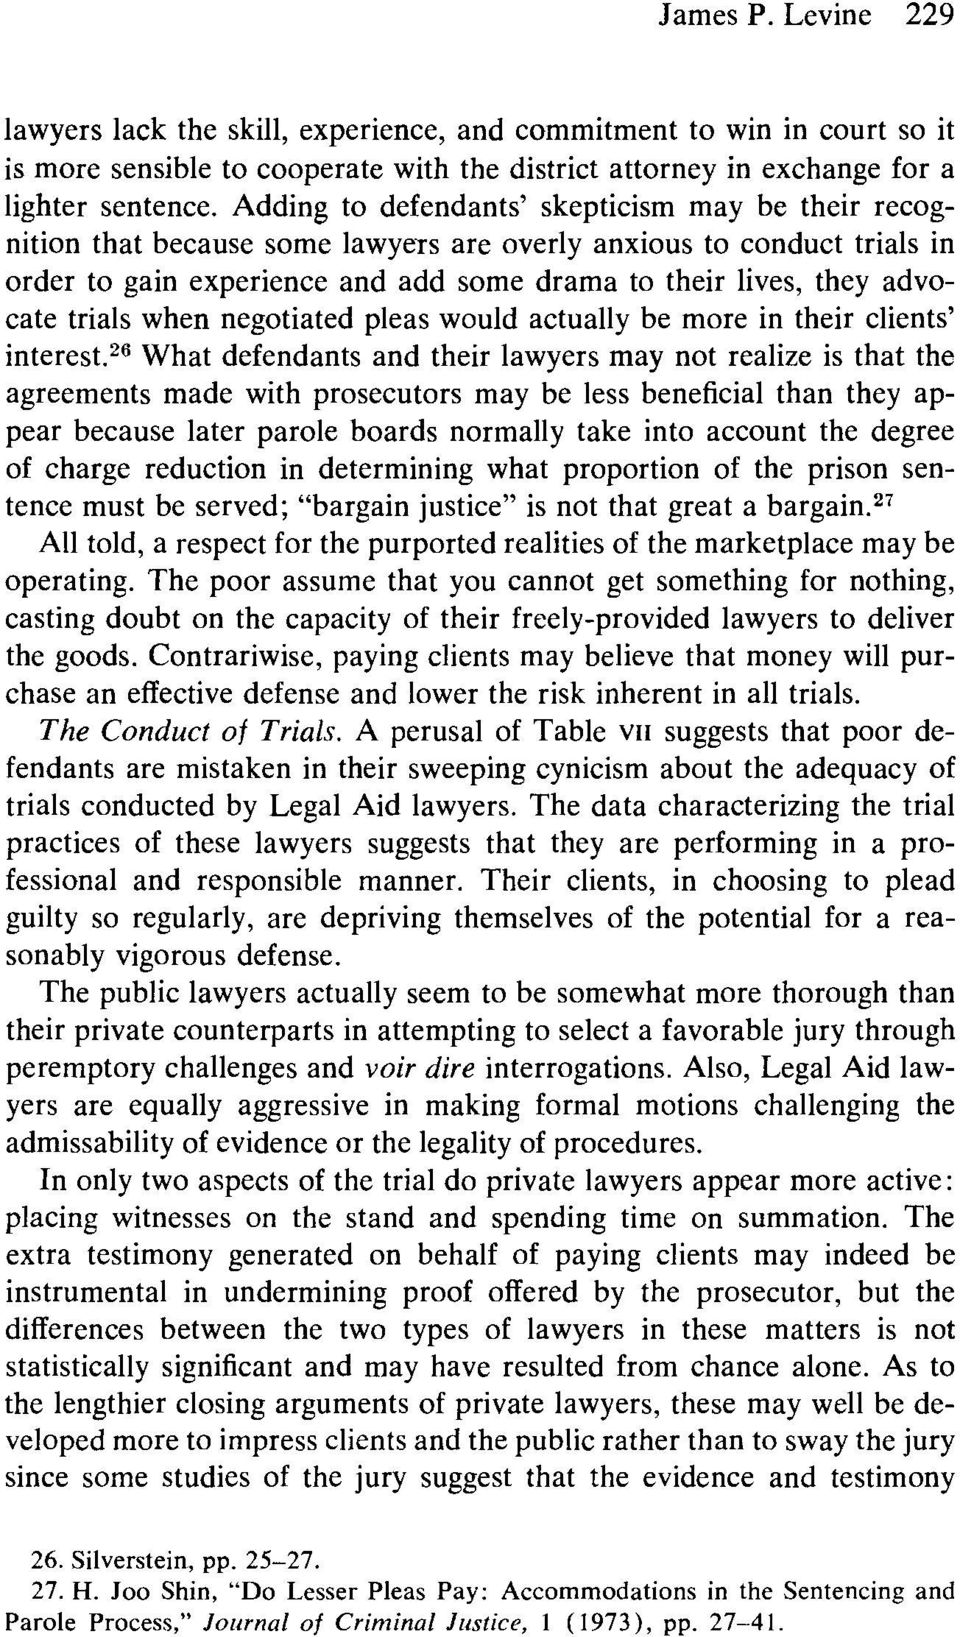 trials when negotiated pleas would actually be more in their clients' interest.